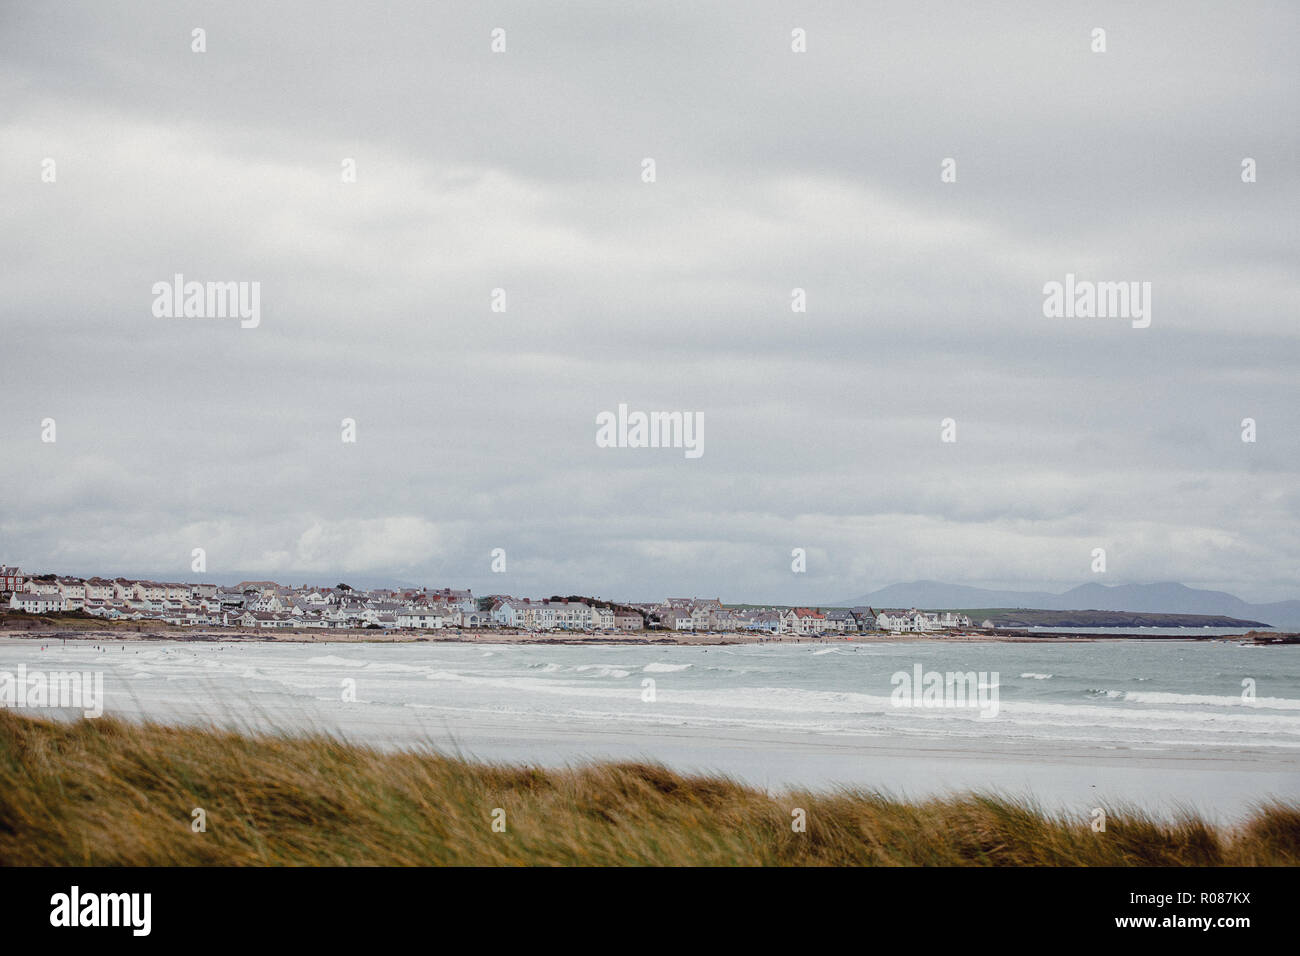 View of Rhosneigr from up in the sand dunes on Cymyran beach, Anglesey, North Wales, UK - Stock Image